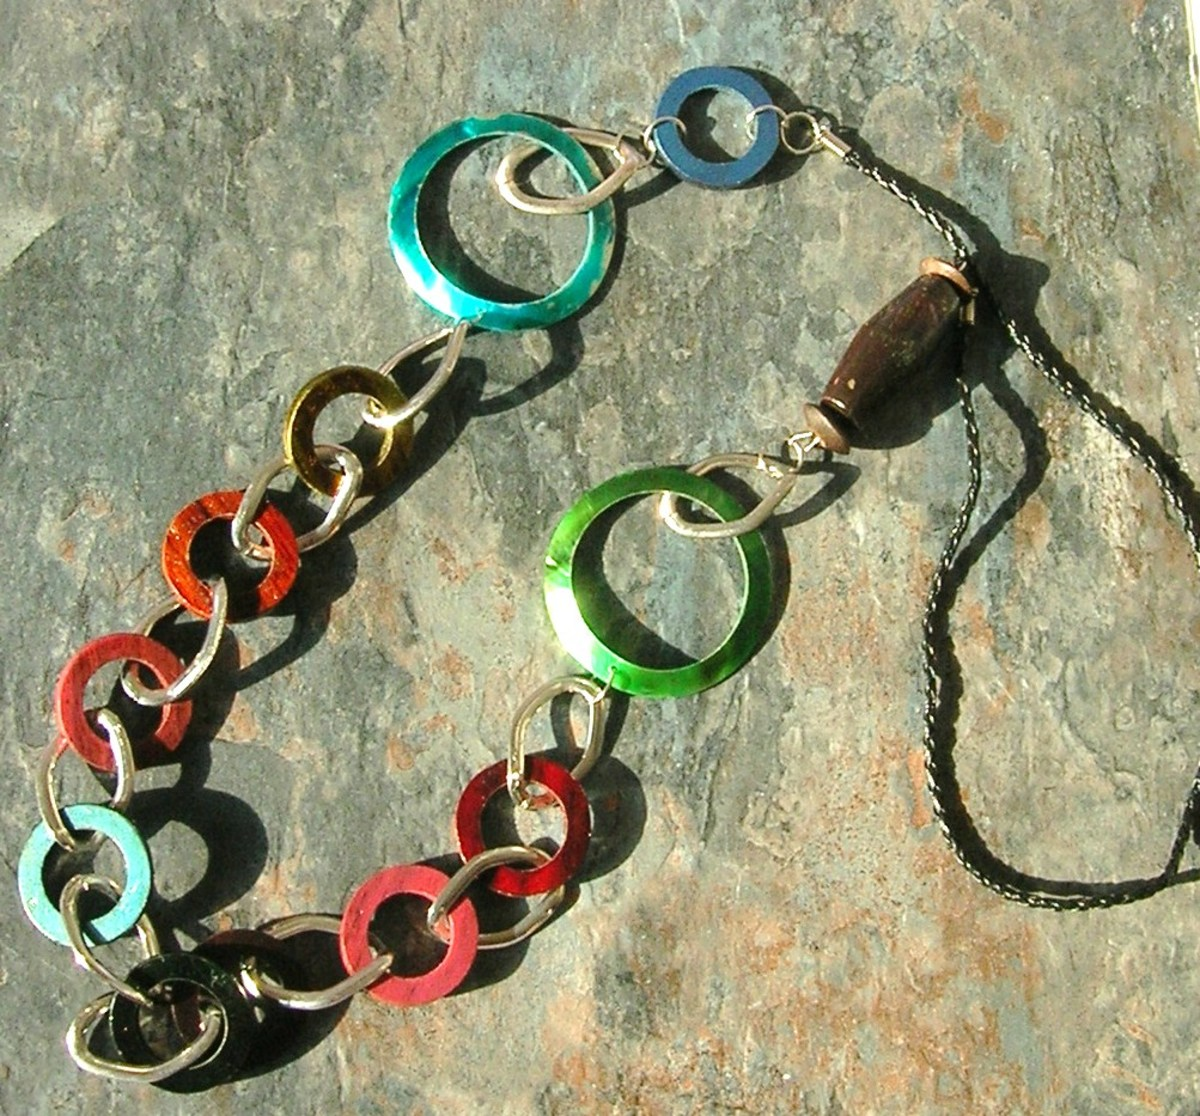 Accessorize your swimsuit with bold items, like this colorful boho necklace.